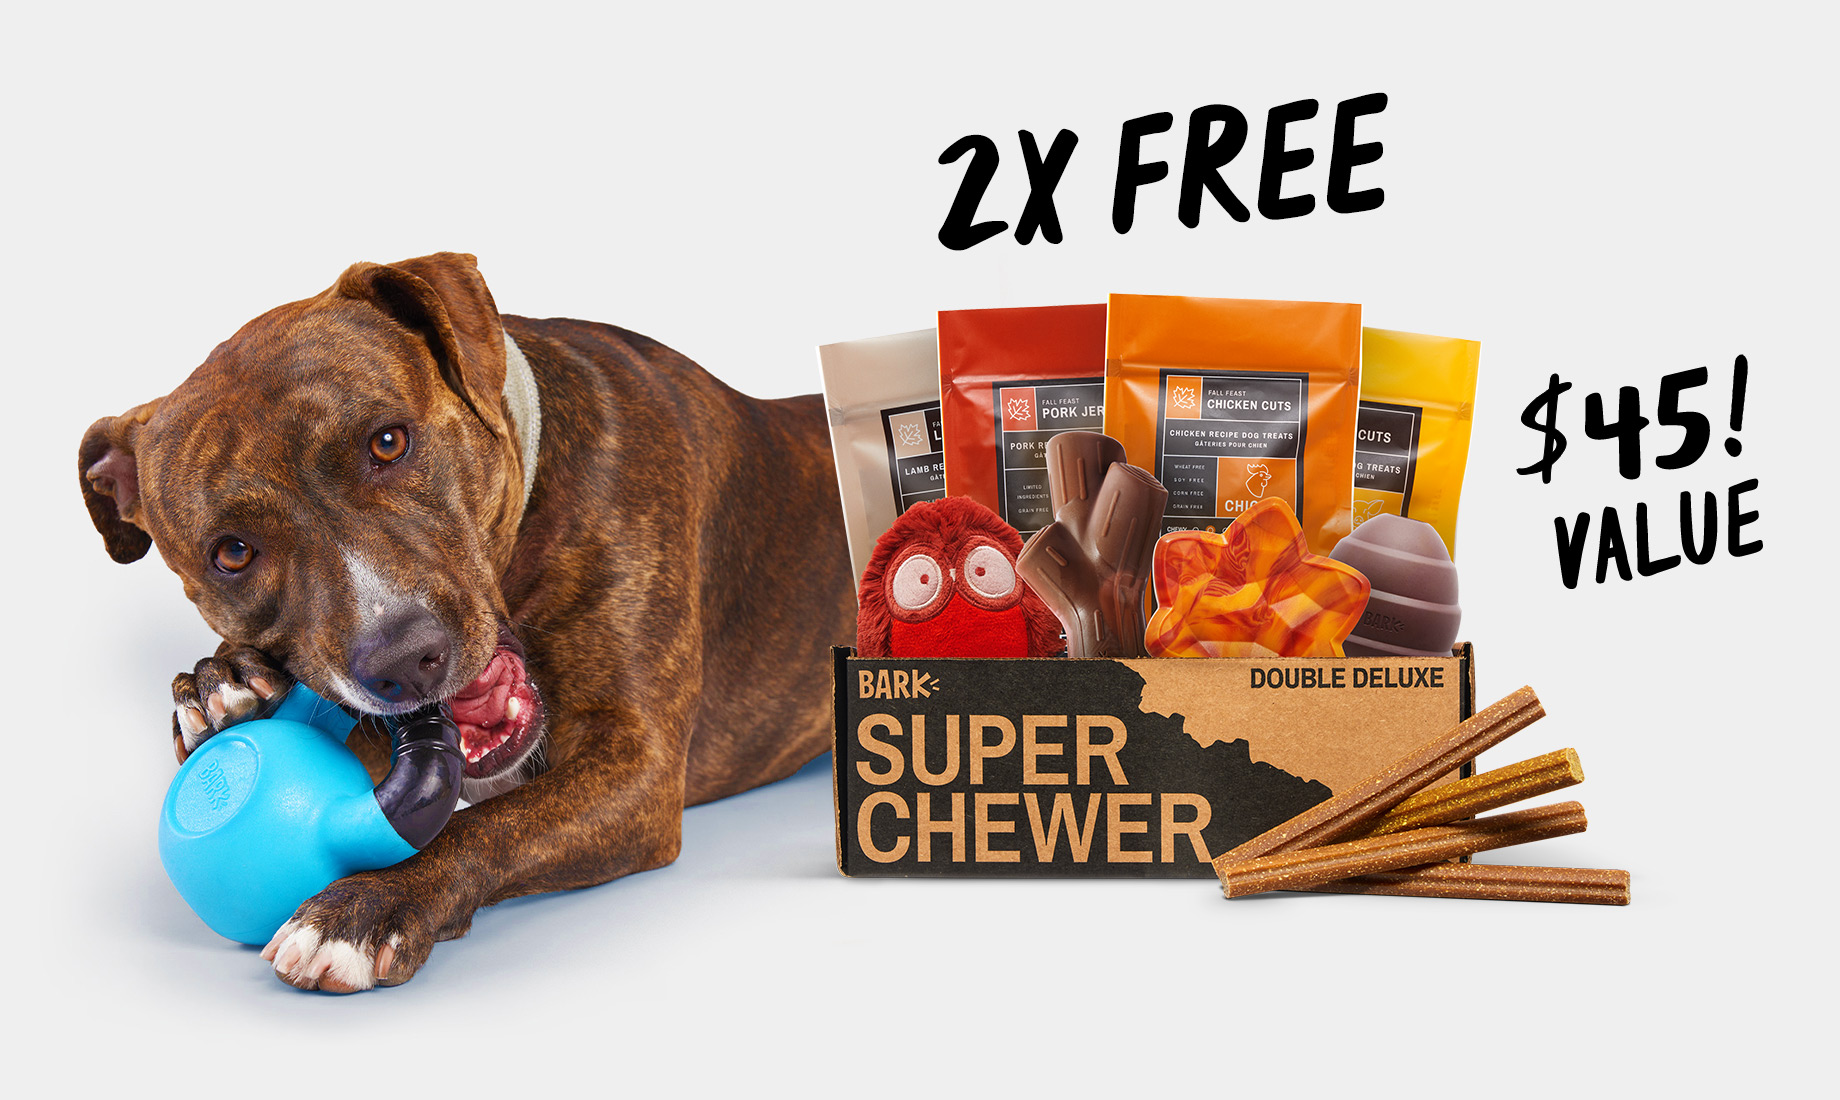 Super Chewer, a themed collection of tough toys, treats, and chews starting at $29 per month